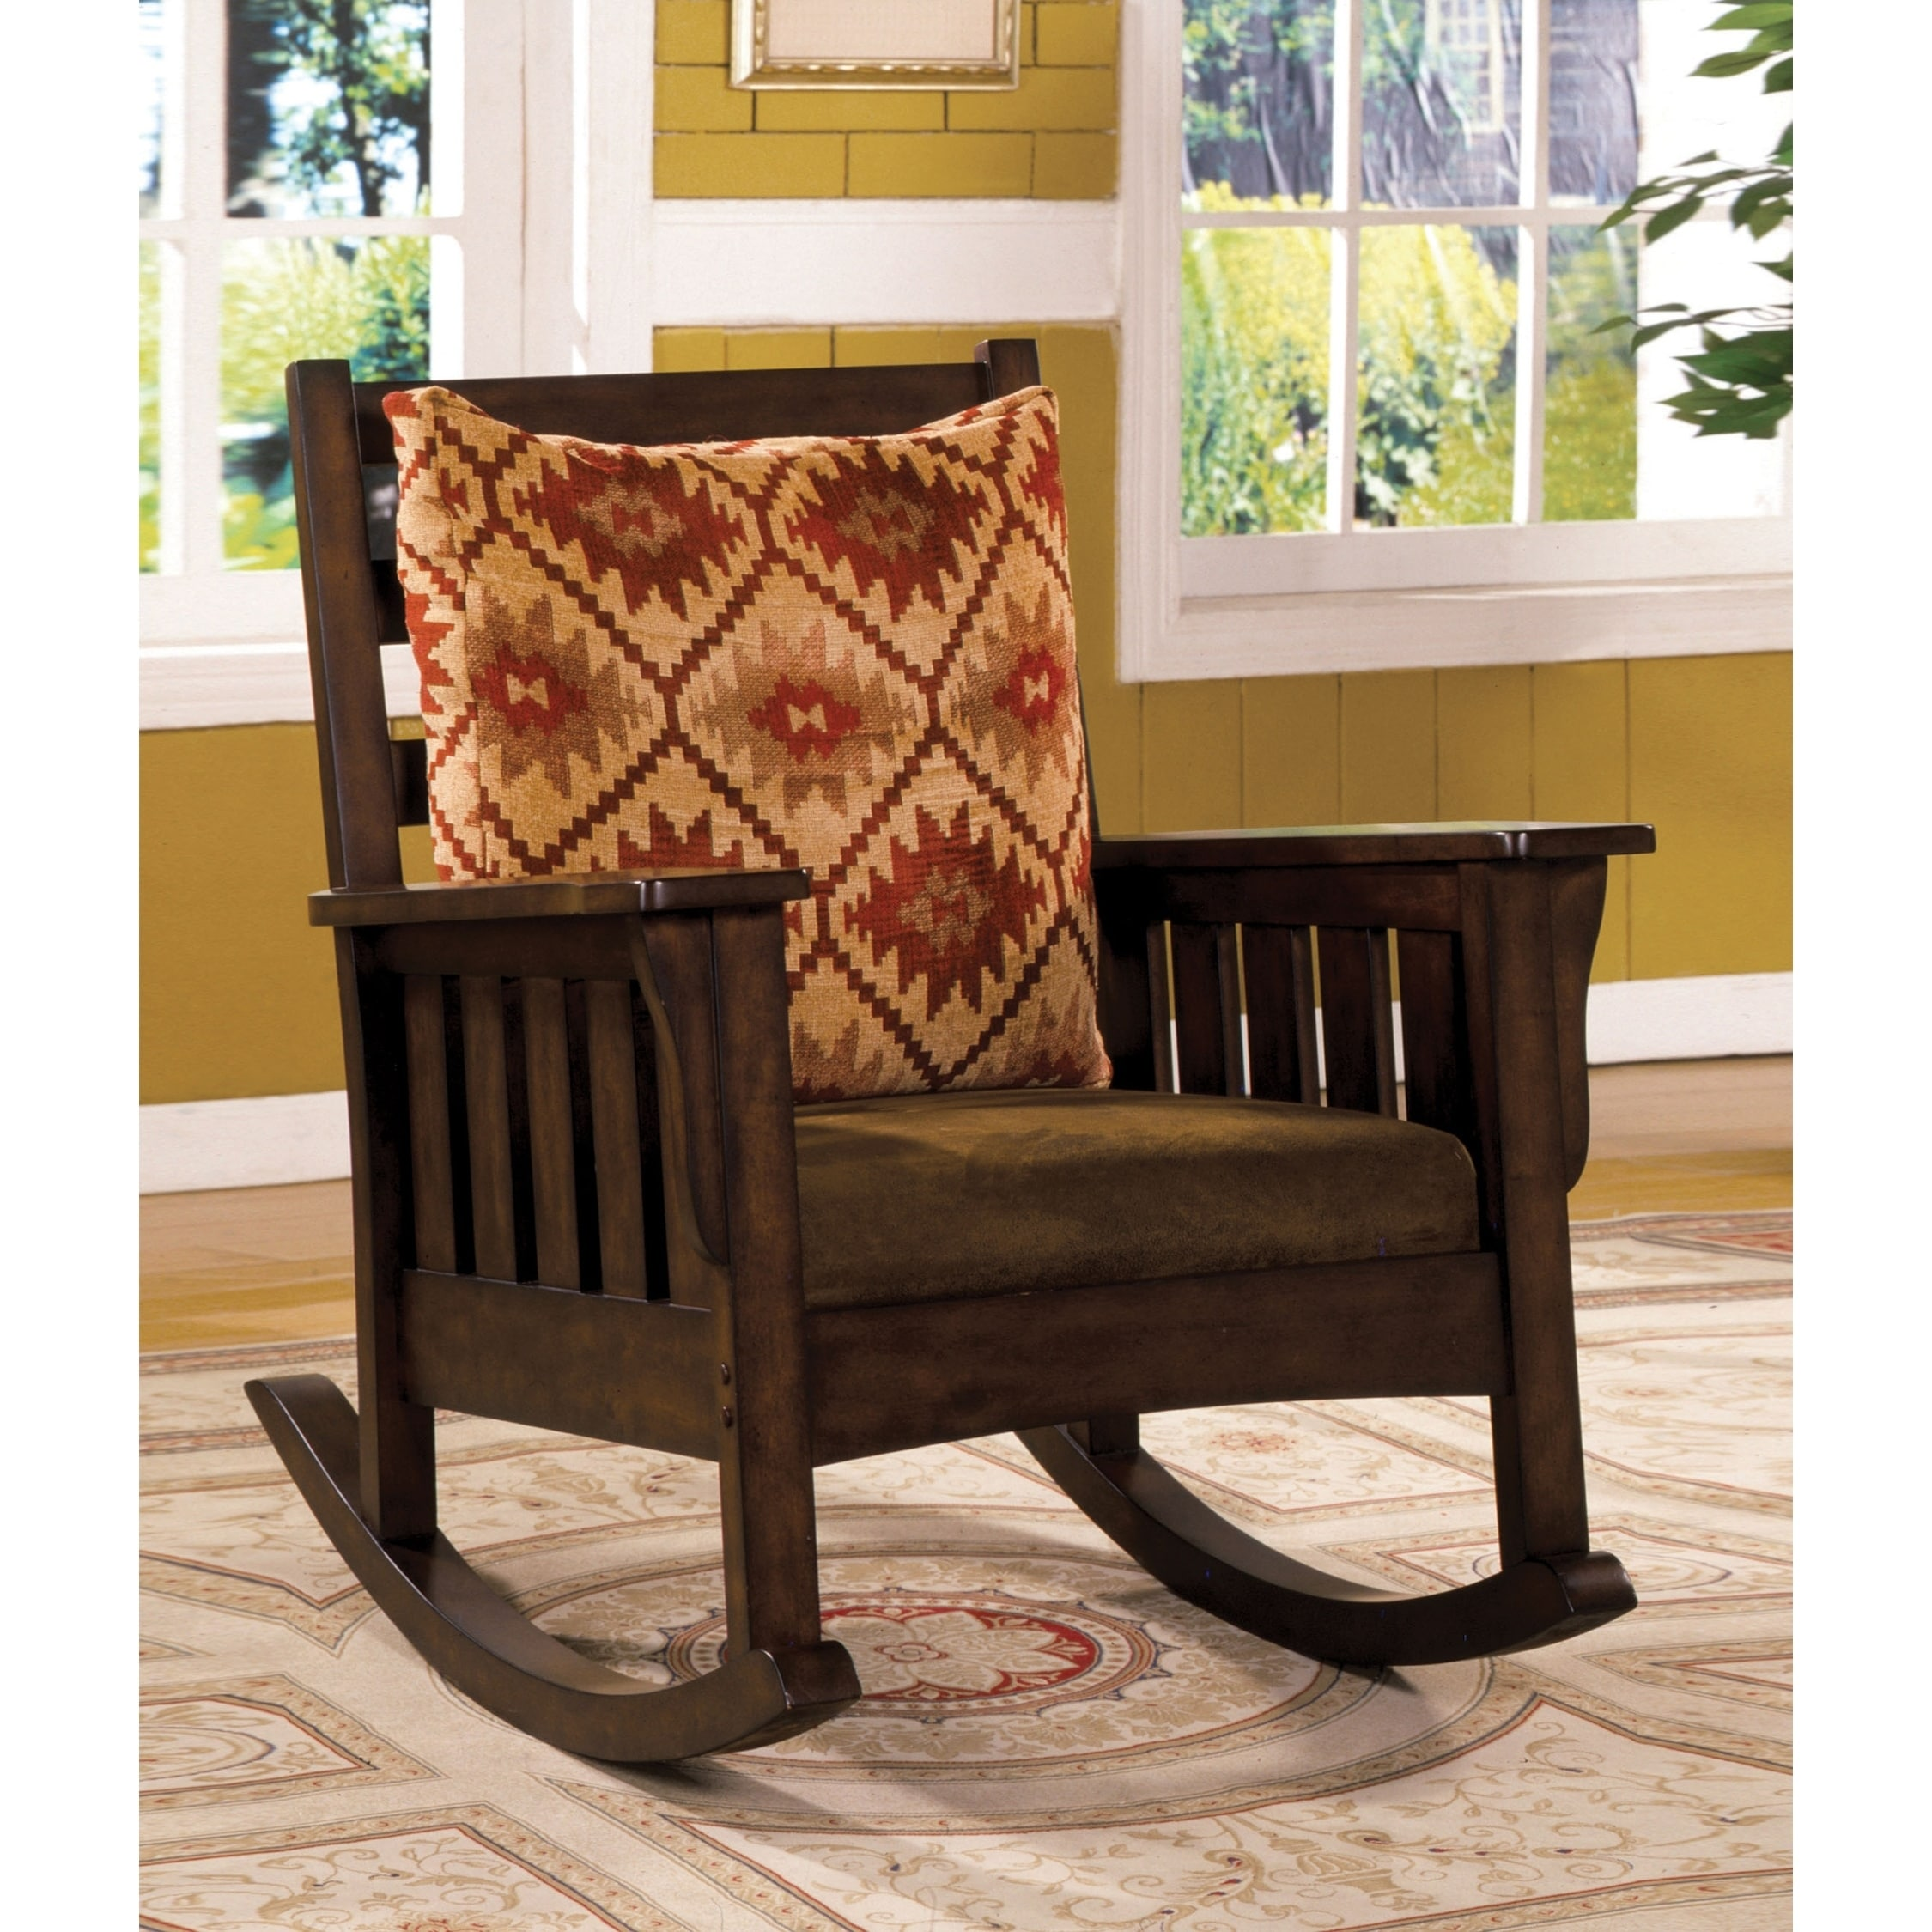 Rocking Accent Chairs Rosewood Traditional Dark Oak Rocking Accent Chair By Foa